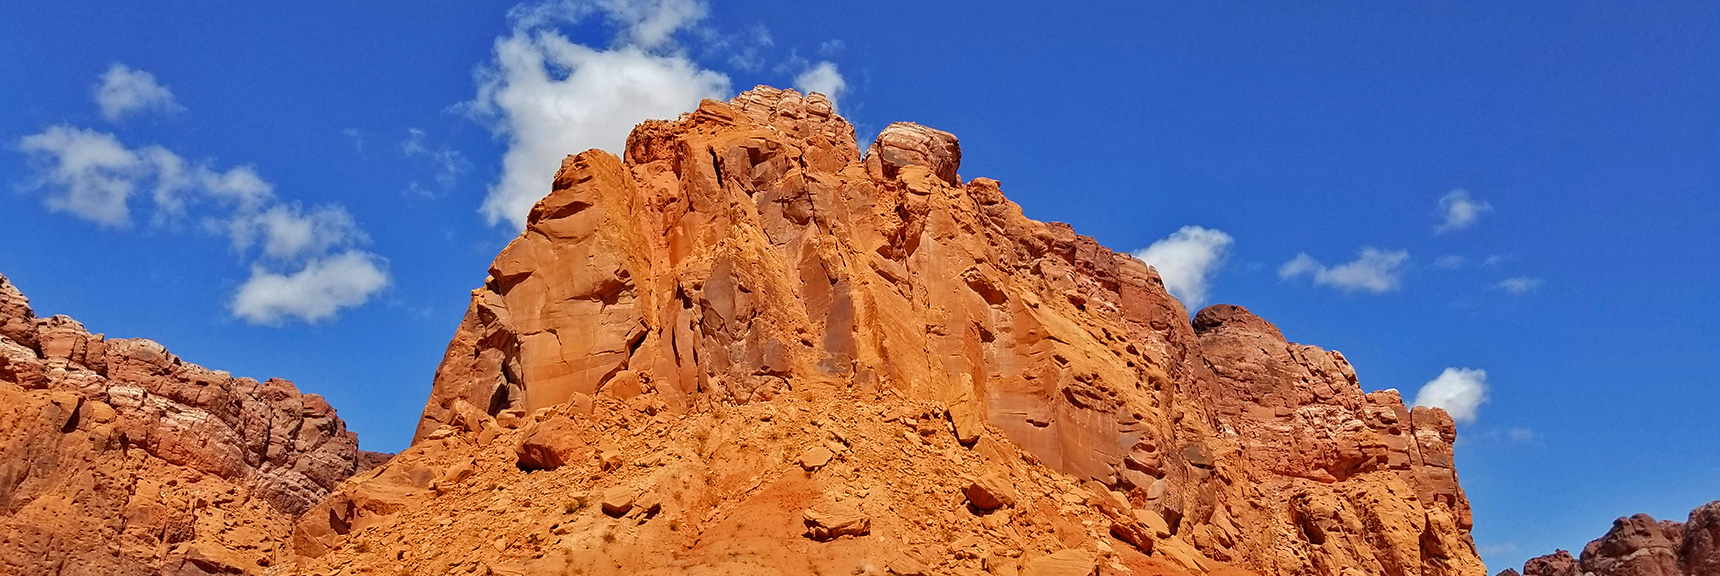 Huge Central Cliff Rock in the Northern Bowl of Fire   Northern Bowl of Fire   Lake Mead National Recreation Area, Nevada